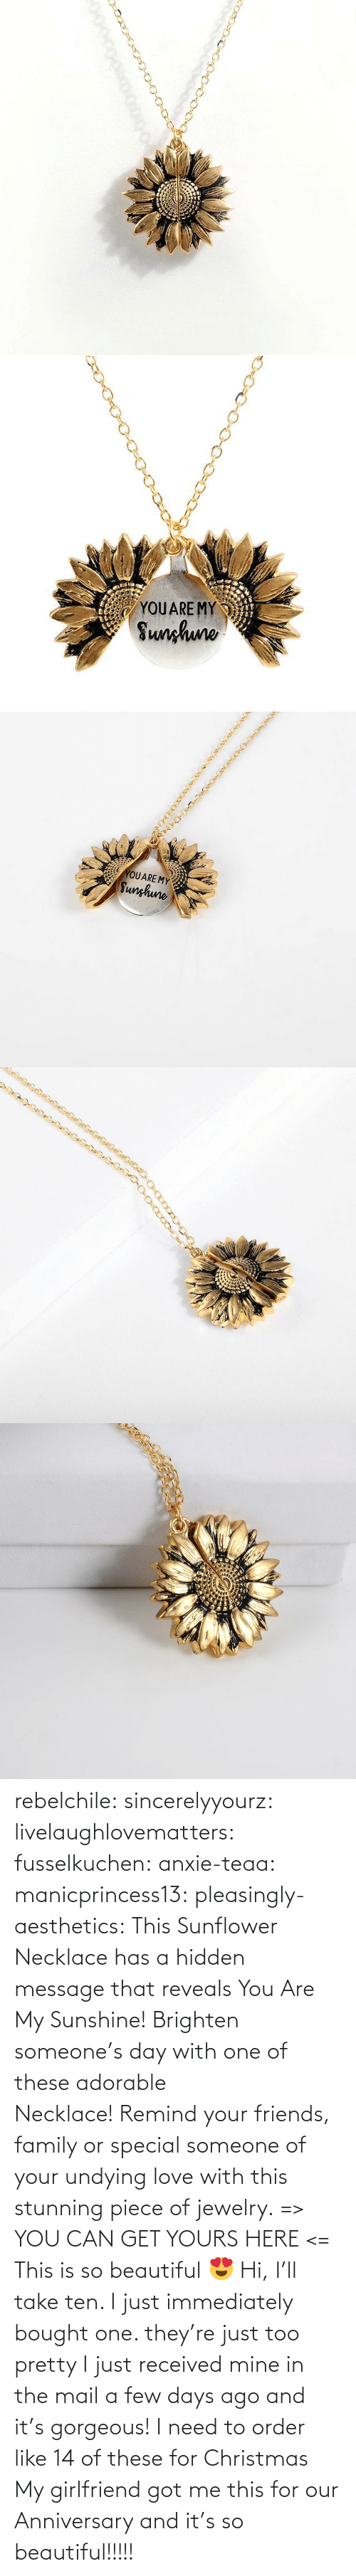 Gorgeous: YOUARE MY  Sunhuno   YOUARE MY  Sunghune rebelchile:  sincerelyyourz:  livelaughlovematters:  fusselkuchen:  anxie-teaa:   manicprincess13:   pleasingly-aesthetics:  This Sunflower Necklace has a hidden message that reveals You Are My Sunshine! Brighten someone's day with one of these adorable Necklace! Remind your friends, family or special someone of your undying love with this stunning piece of jewelry. => YOU CAN GET YOURS HERE <=   This is so beautiful 😍    Hi, I'll take ten.    I just immediately bought one. they're just too pretty   I just received mine in the mail a few days ago and it's gorgeous!   I need to order like 14 of these for Christmas    My girlfriend got me this for our Anniversary and it's so beautiful!!!!!